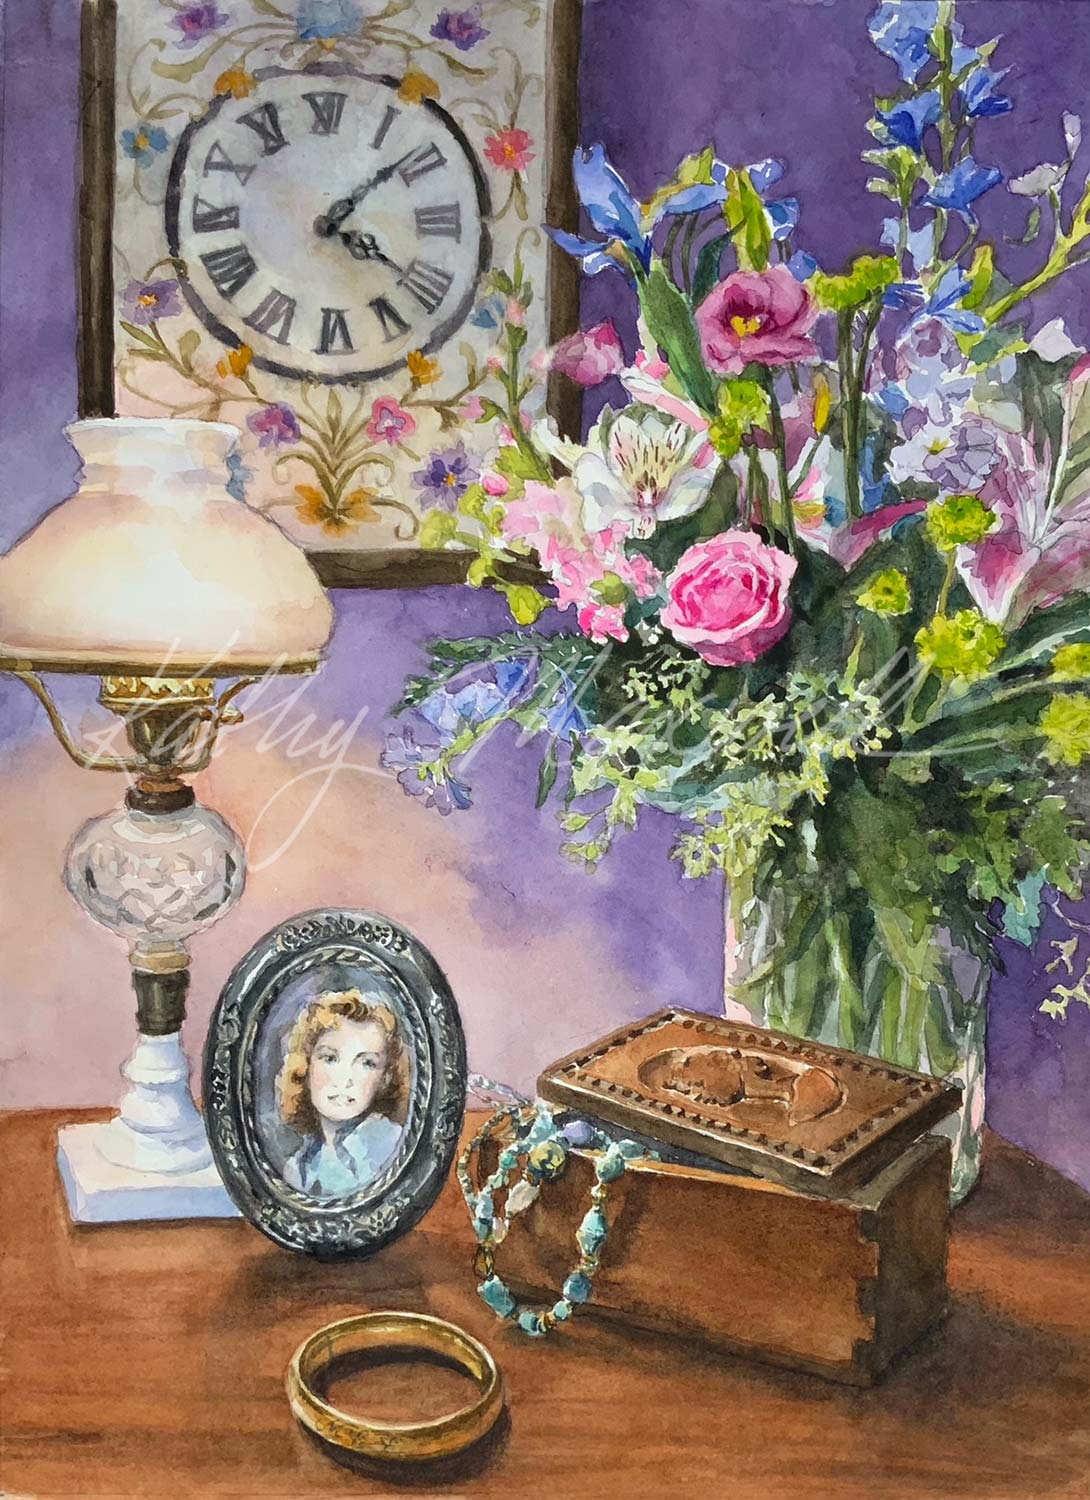 Remembrances of Mom